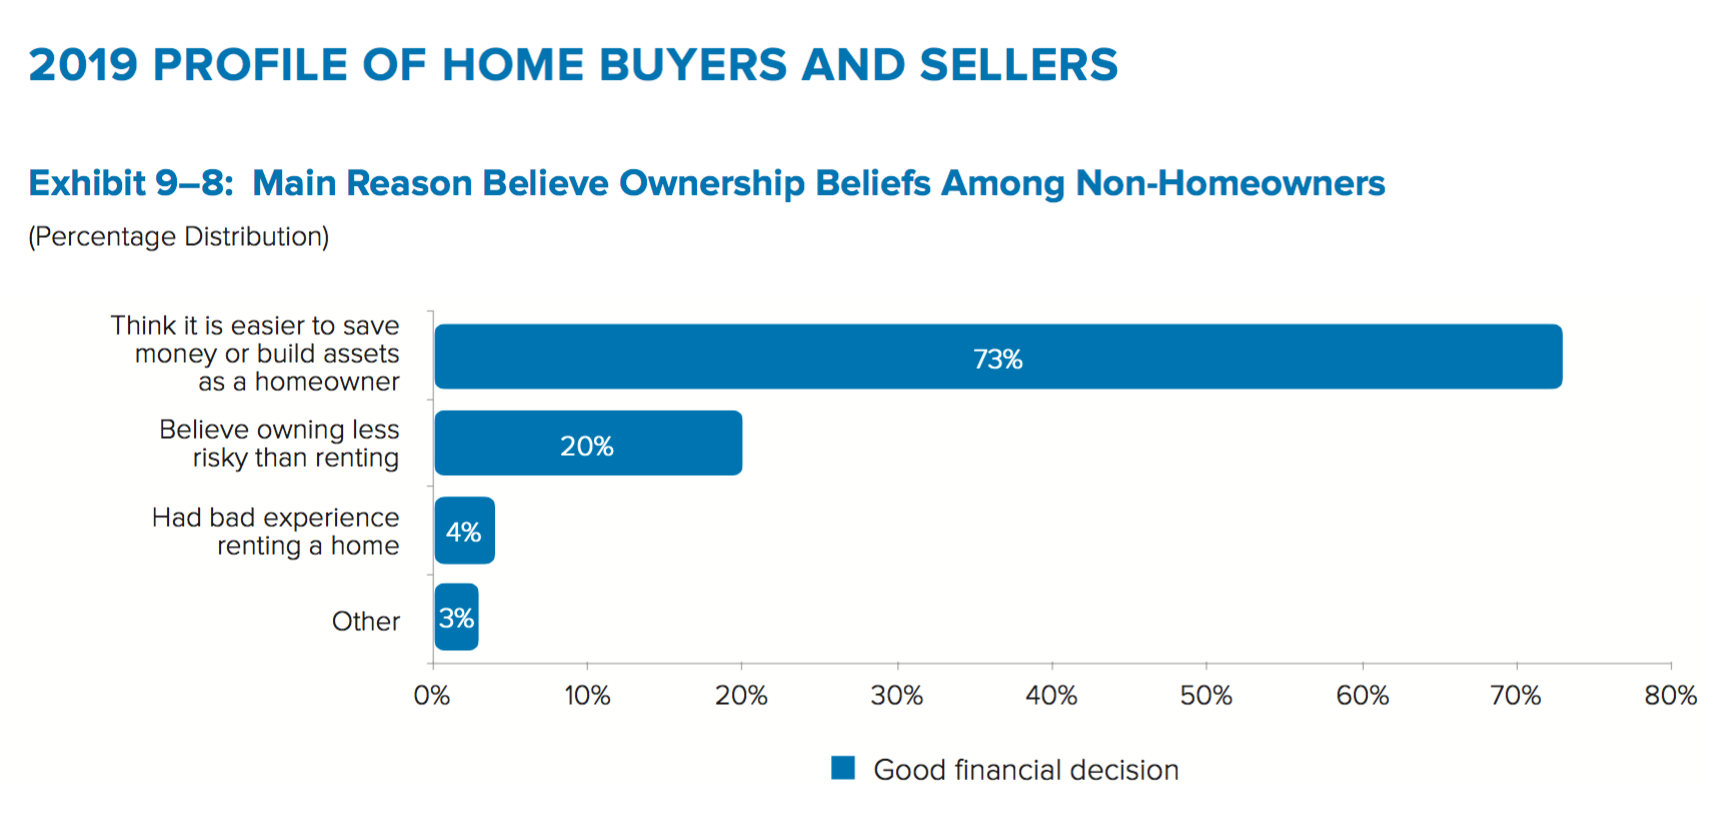 Ownership beliefs. Content reflects article text.